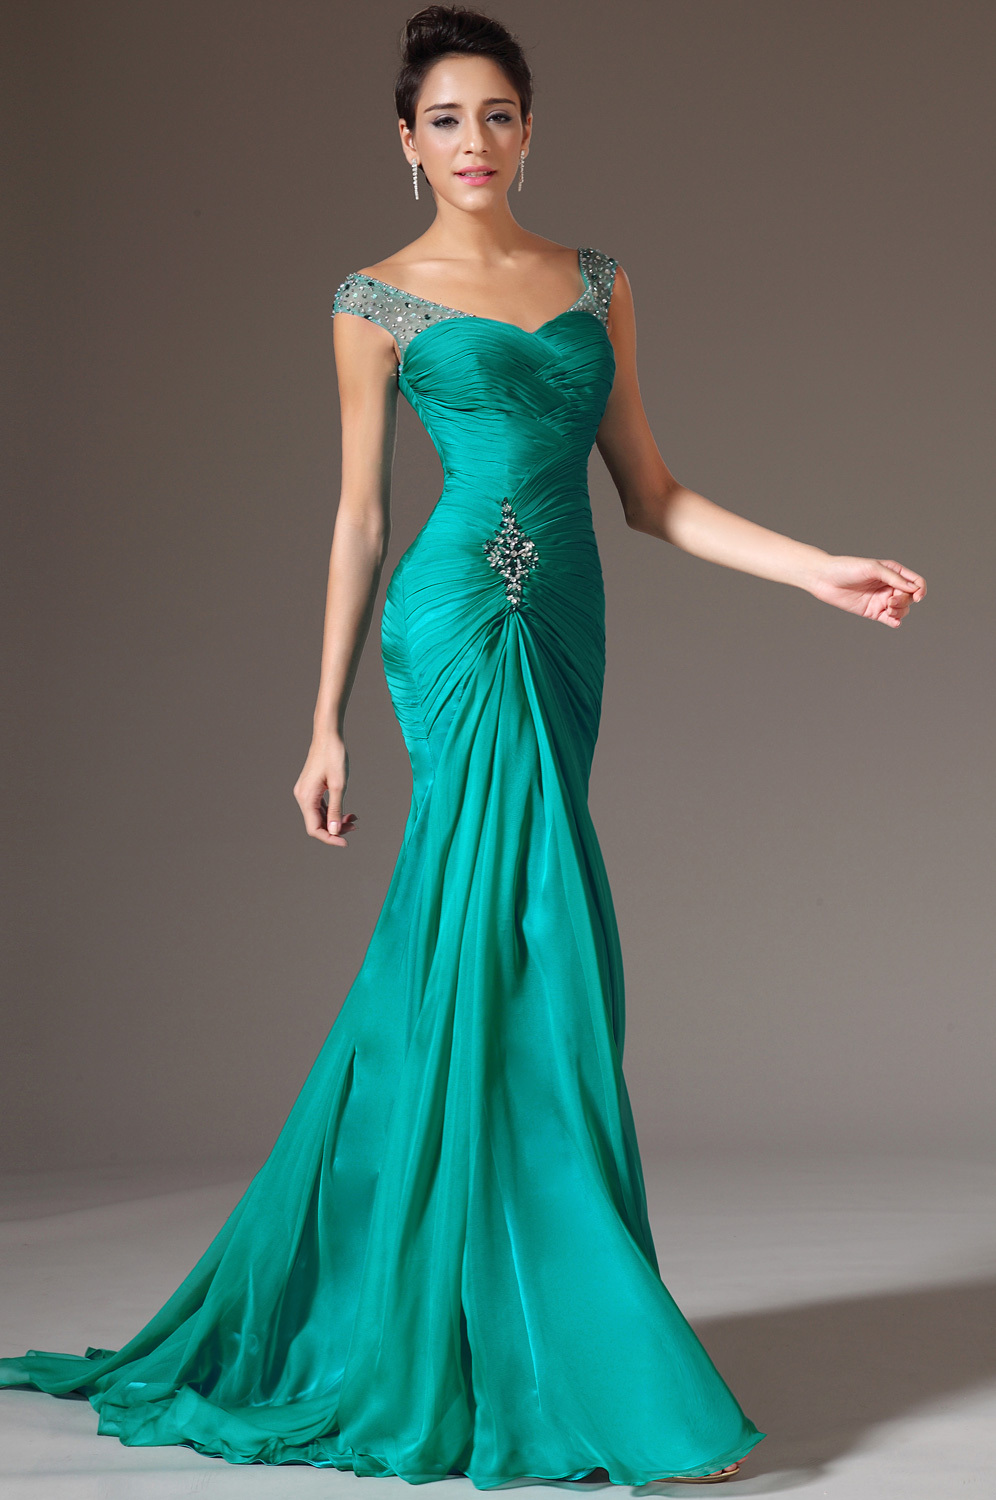 Compare Prices on Prom Gown Sale- Online Shopping/Buy Low Price ...